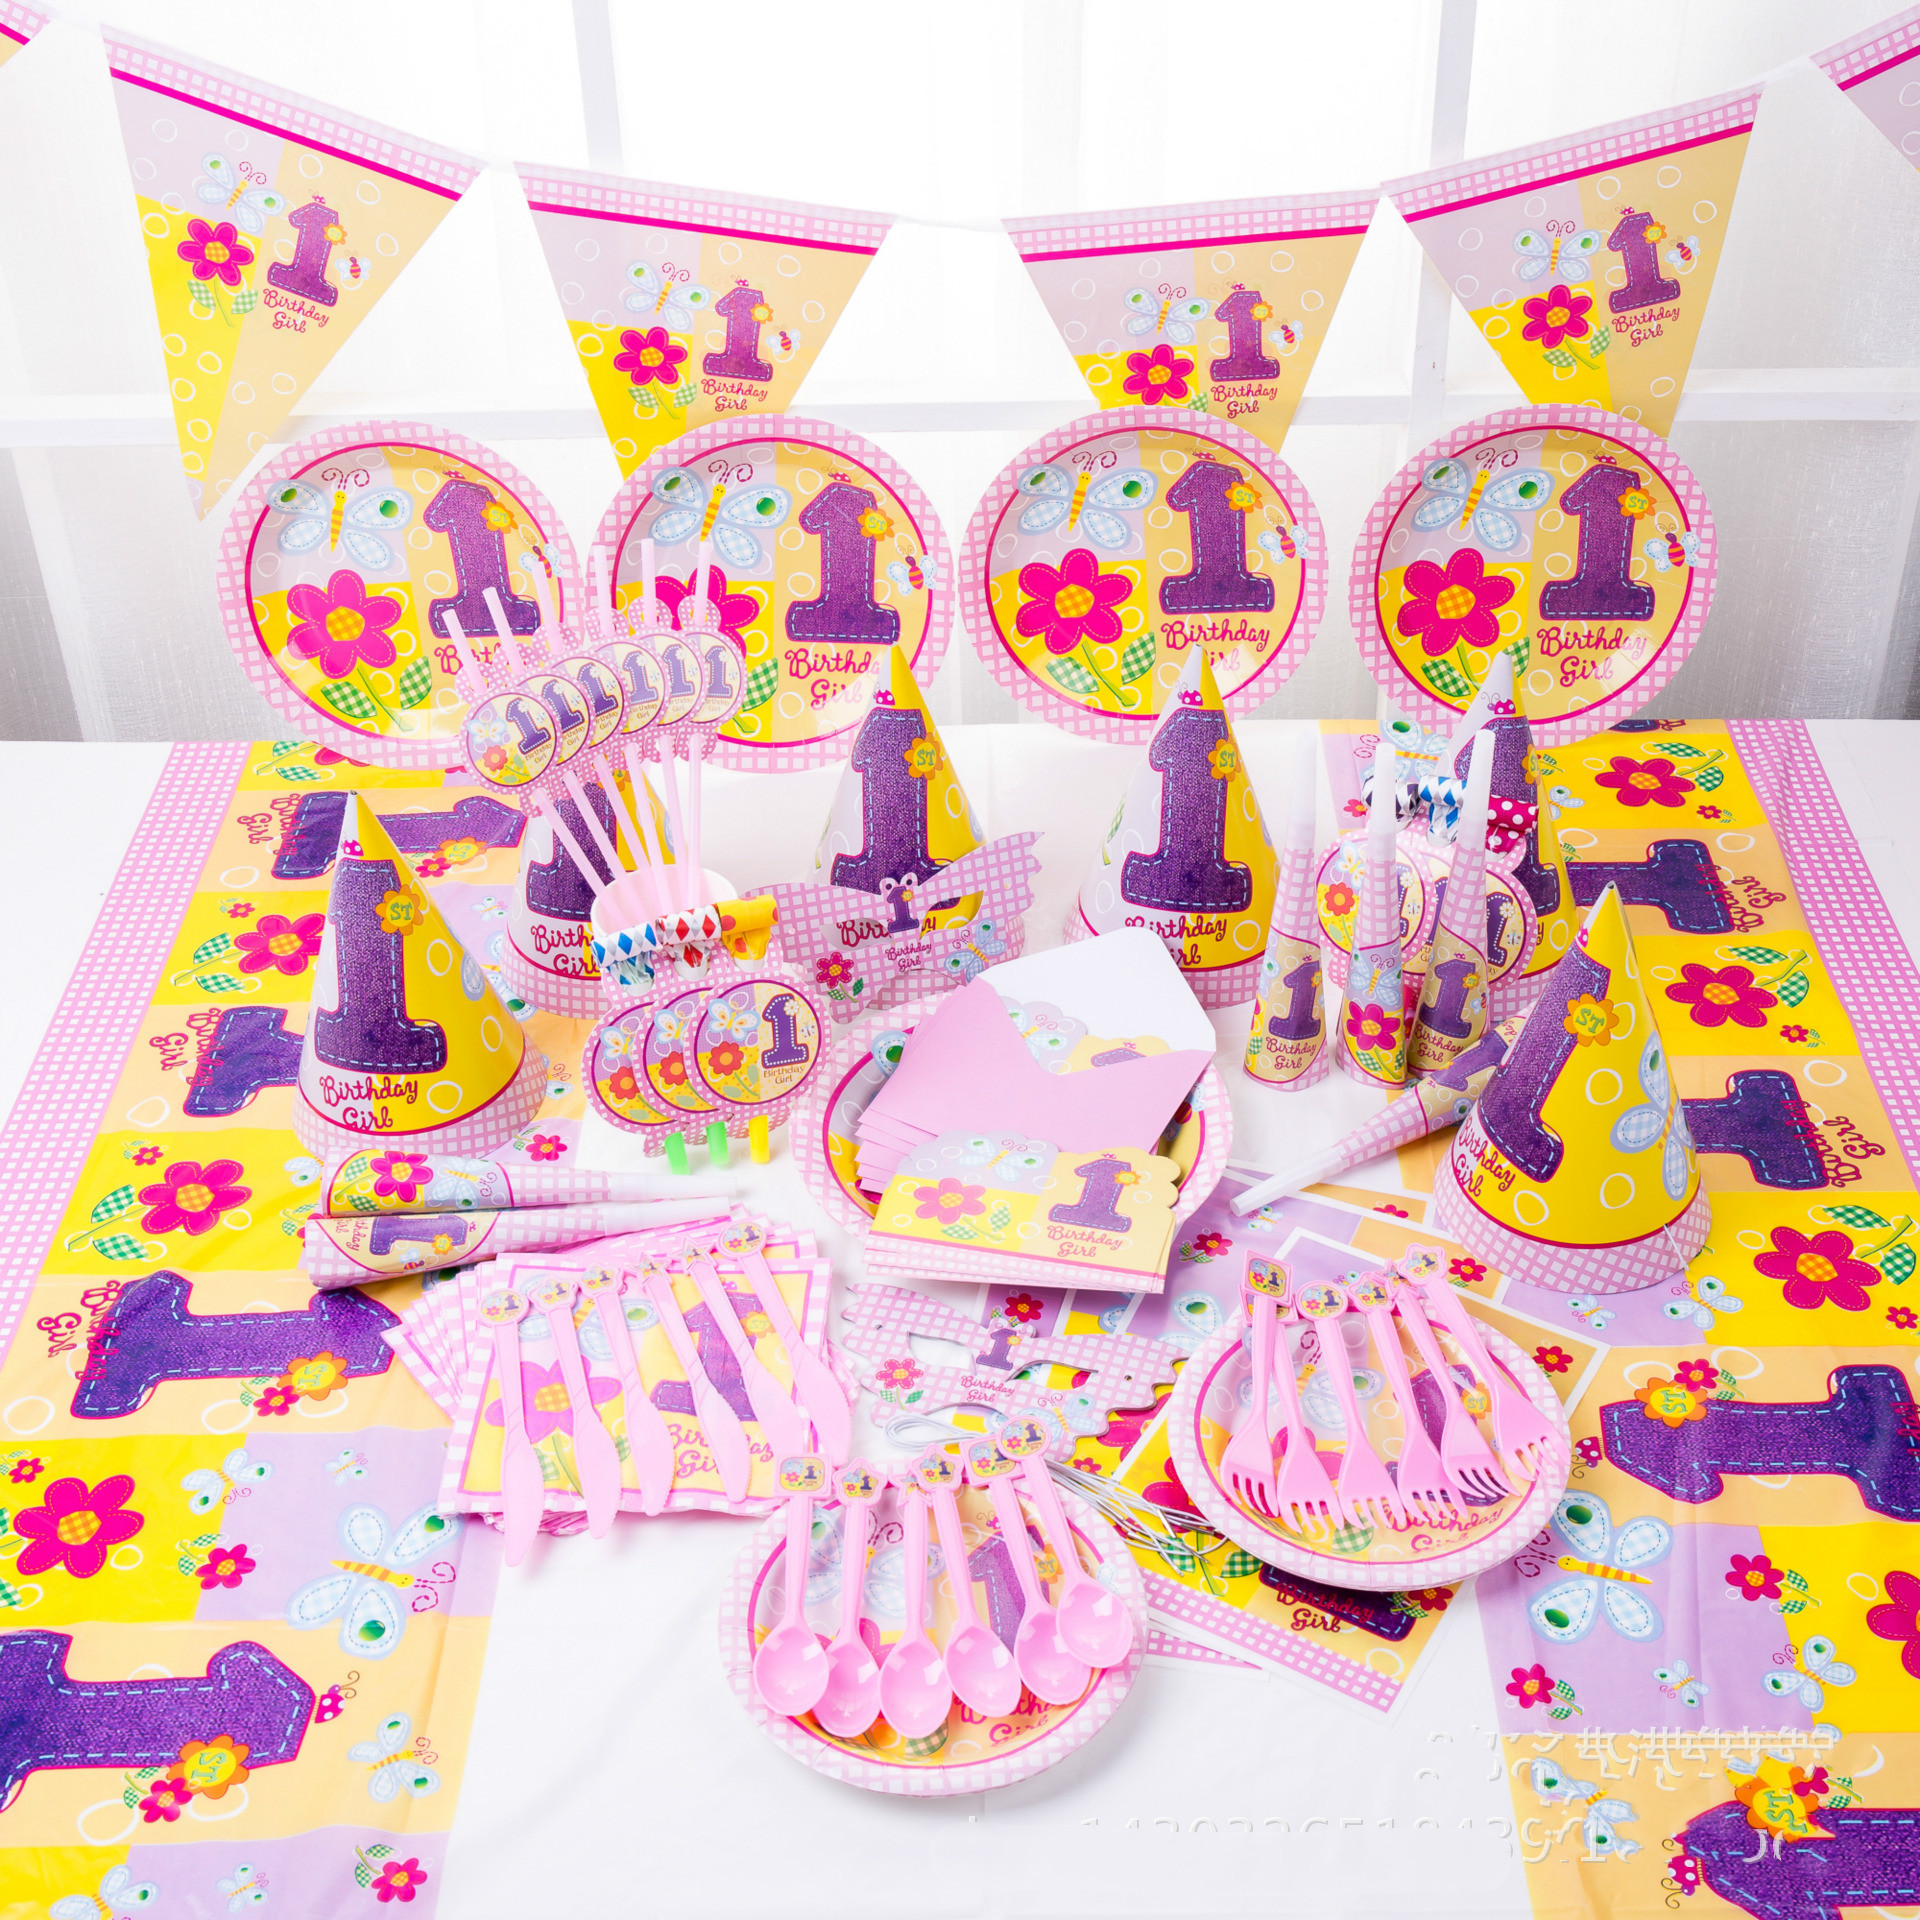 Baby Party Supplies Set 6 People 1 Year Old Flower Theme Birthday Party Supplies Set Baby Gift Child Girls Party Supplies Set